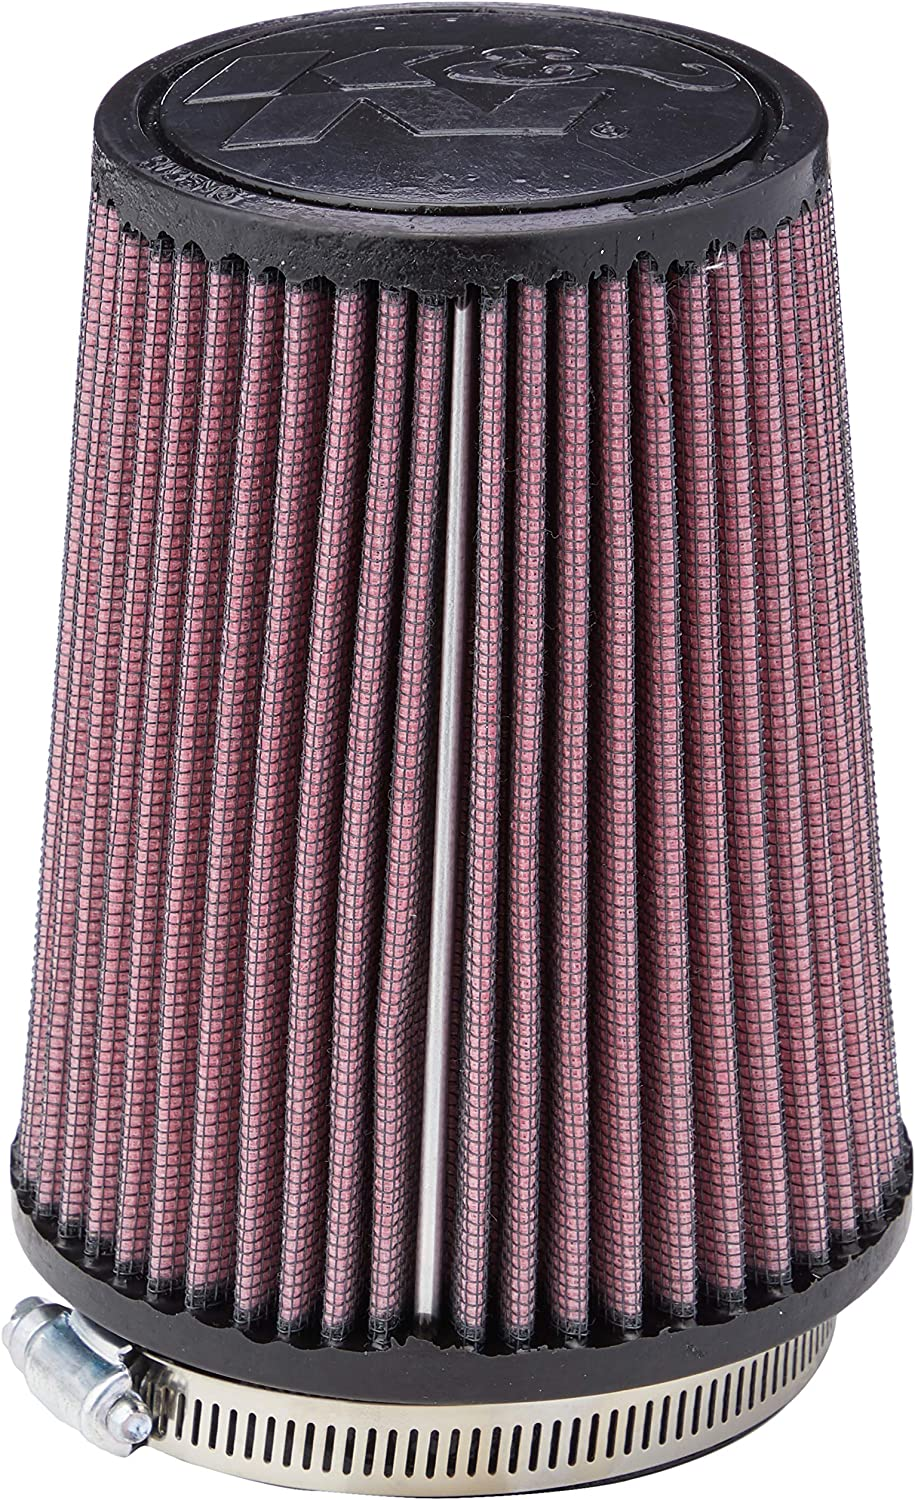 K&N Universal Clamp-On Air Filter: High Performance, Premium, Washable, Replacement Filter: Flange Diameter: 3 In, Filter Height: 5.75 In, Flange Length: 0.75 In, Shape: Round Tapered, RU-5111